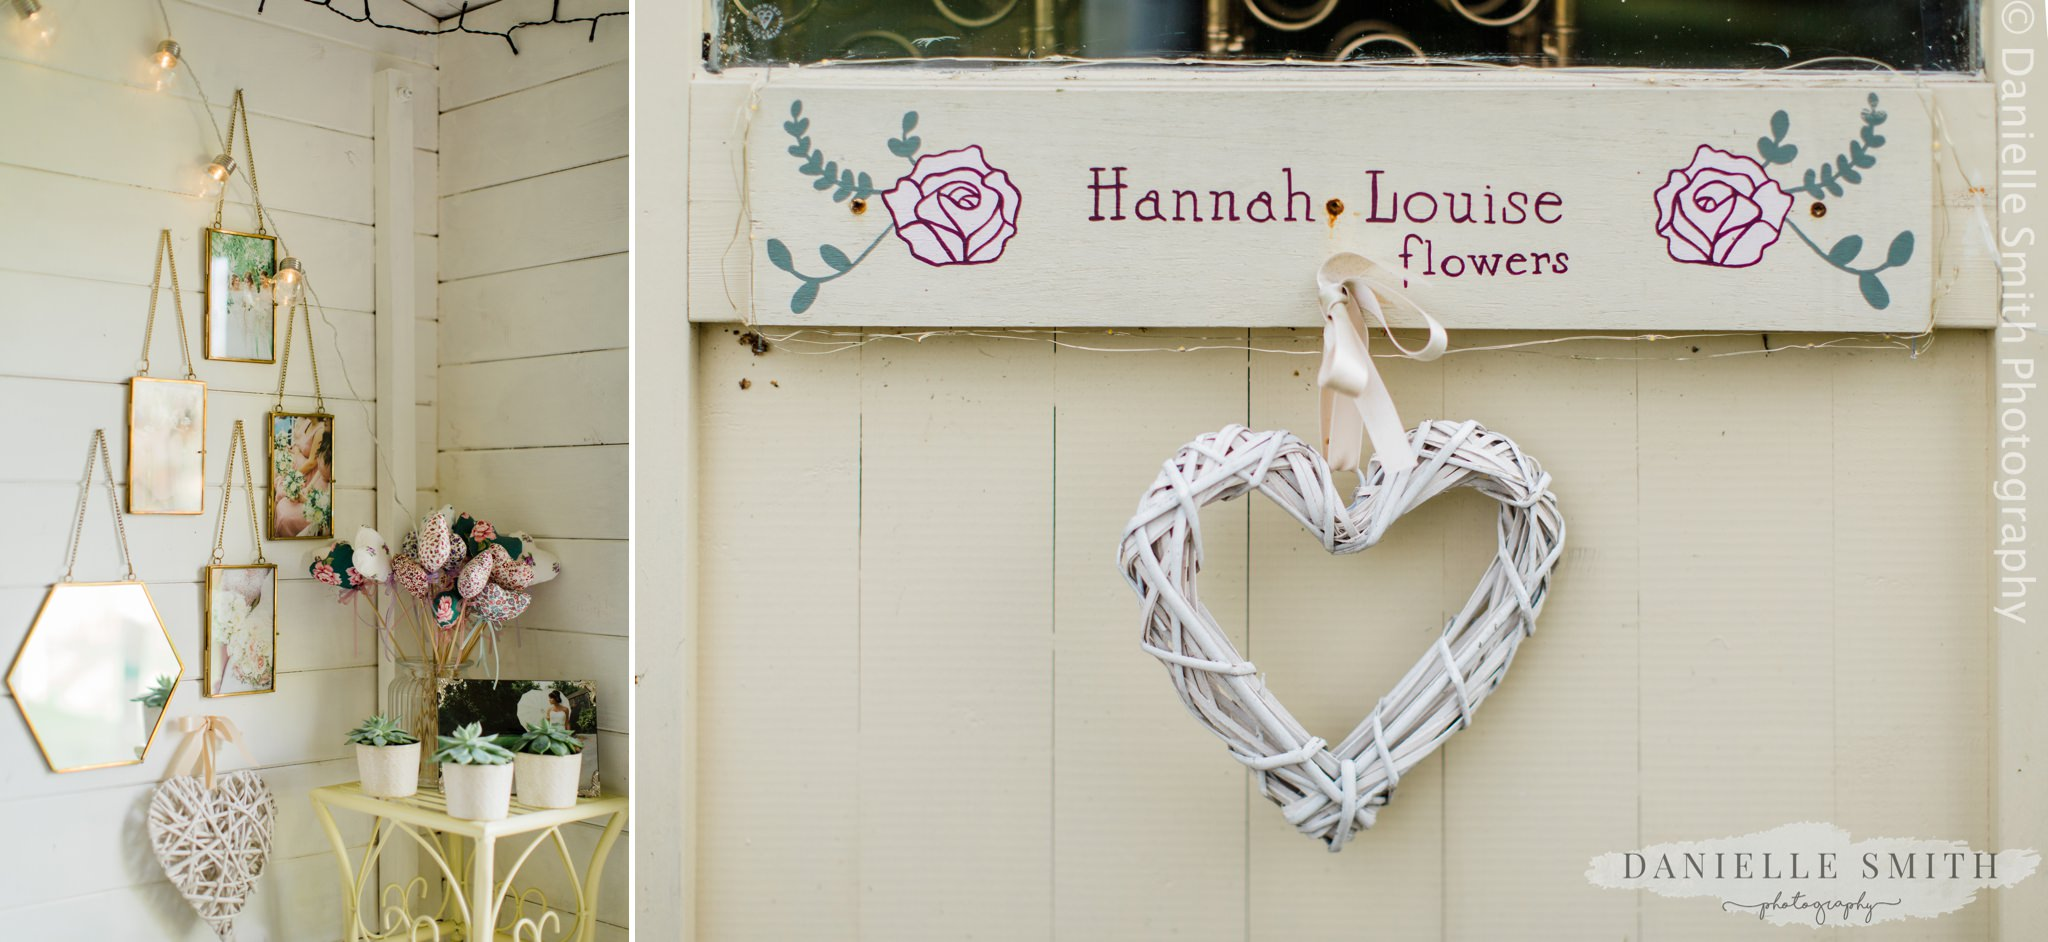 hannah louise flowers florist sign